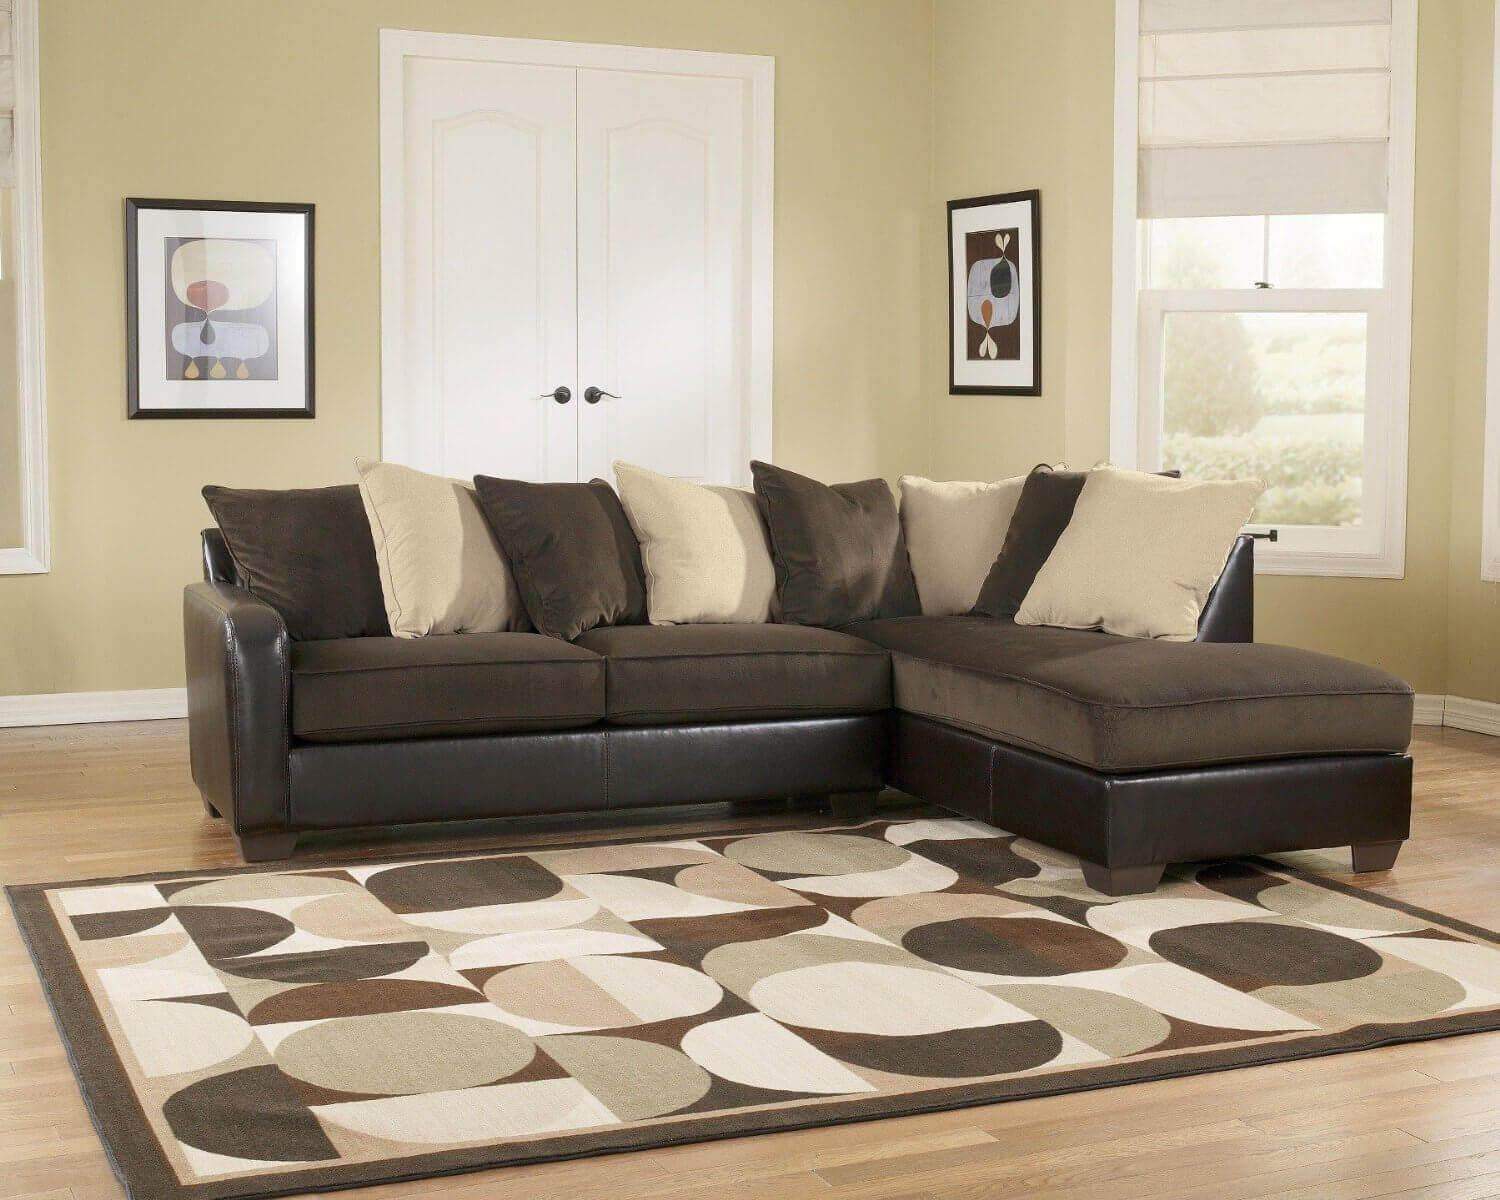 100 Beautiful Sectional Sofas Under $1,000 With Cream Sectional Leather Sofas (View 9 of 22)